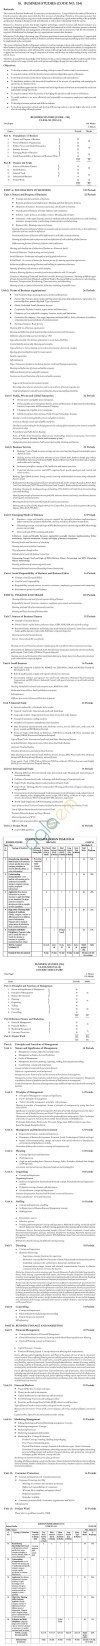 CBSE Class XI / XII Business Studies Syllabus 2014   2015 Image by AglaSem